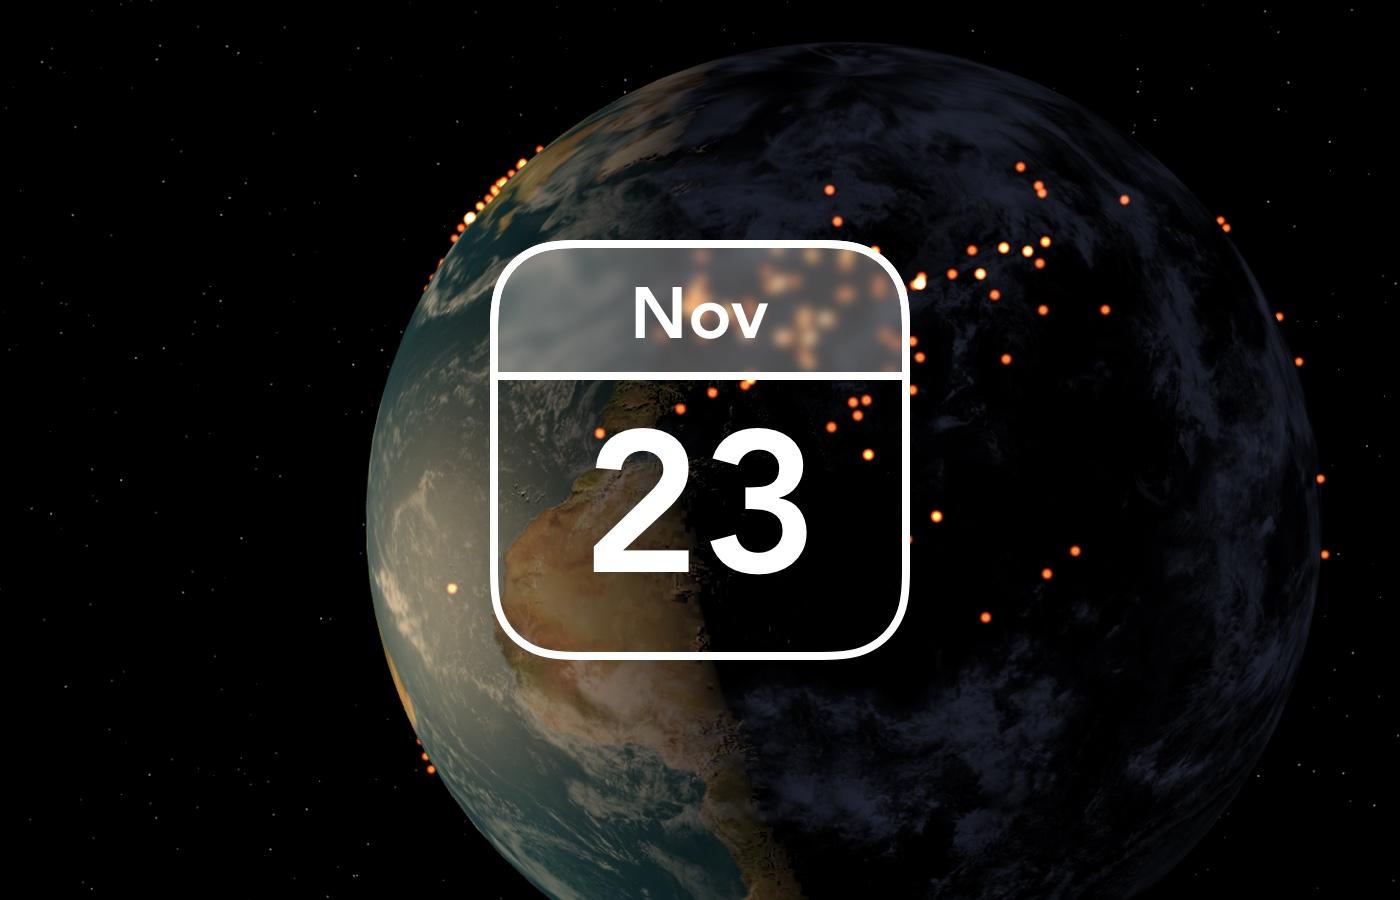 image of the globe with small lights representing customers, the date November 23, Black Friday, is stamped over the image